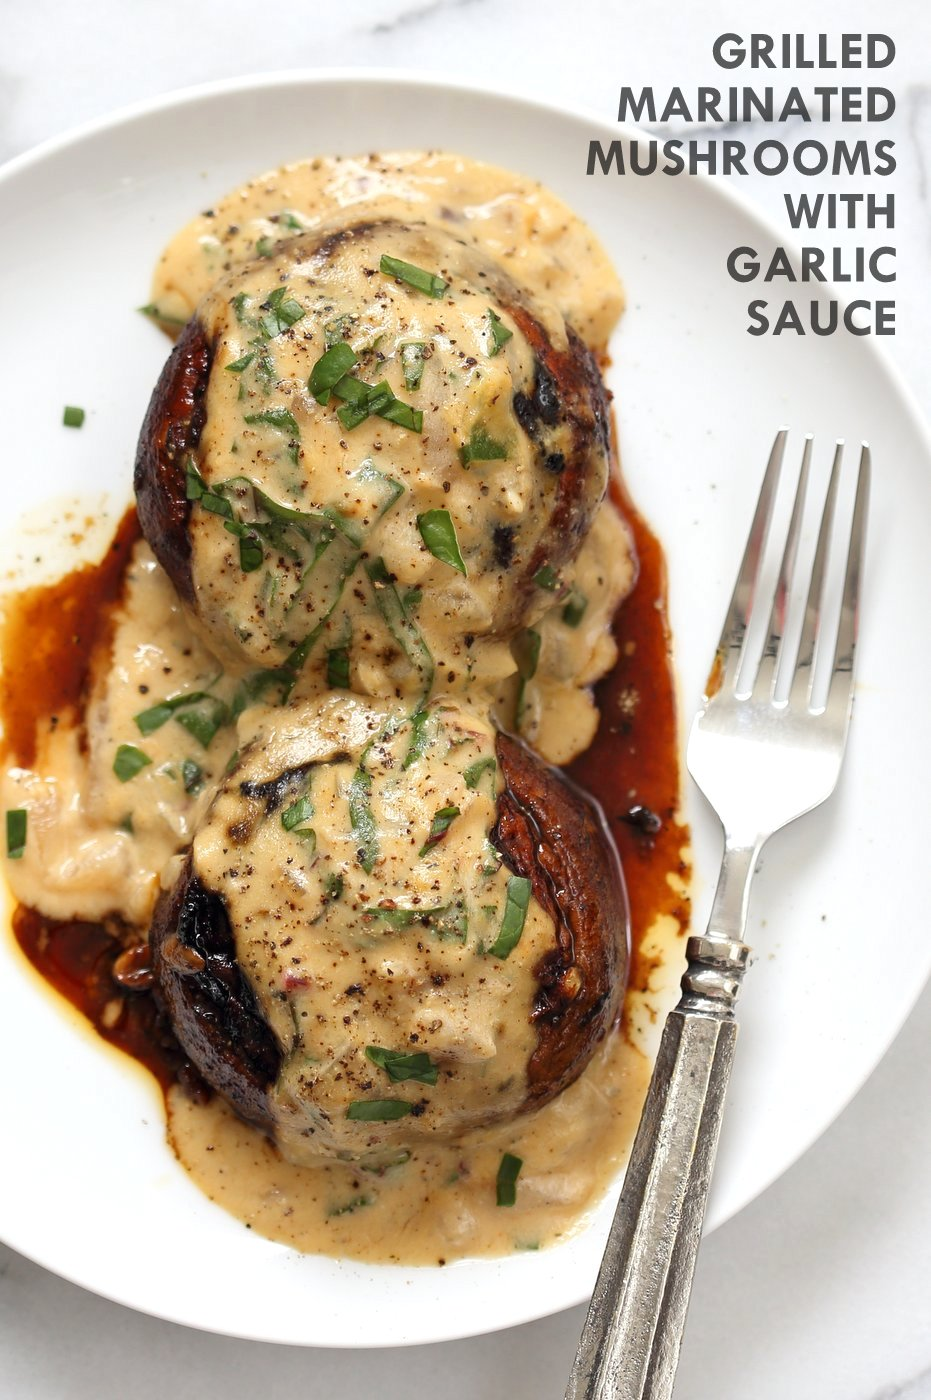 Chynna Grilled Portobello Mushrooms with Garlic Sauce